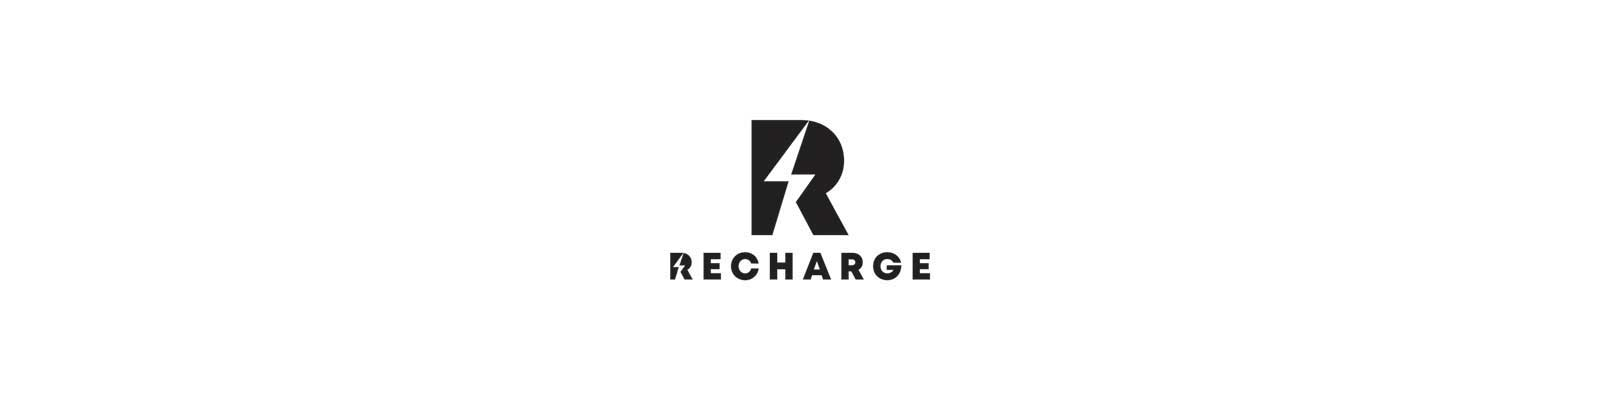 Recharge Logo with Fitter Stronger